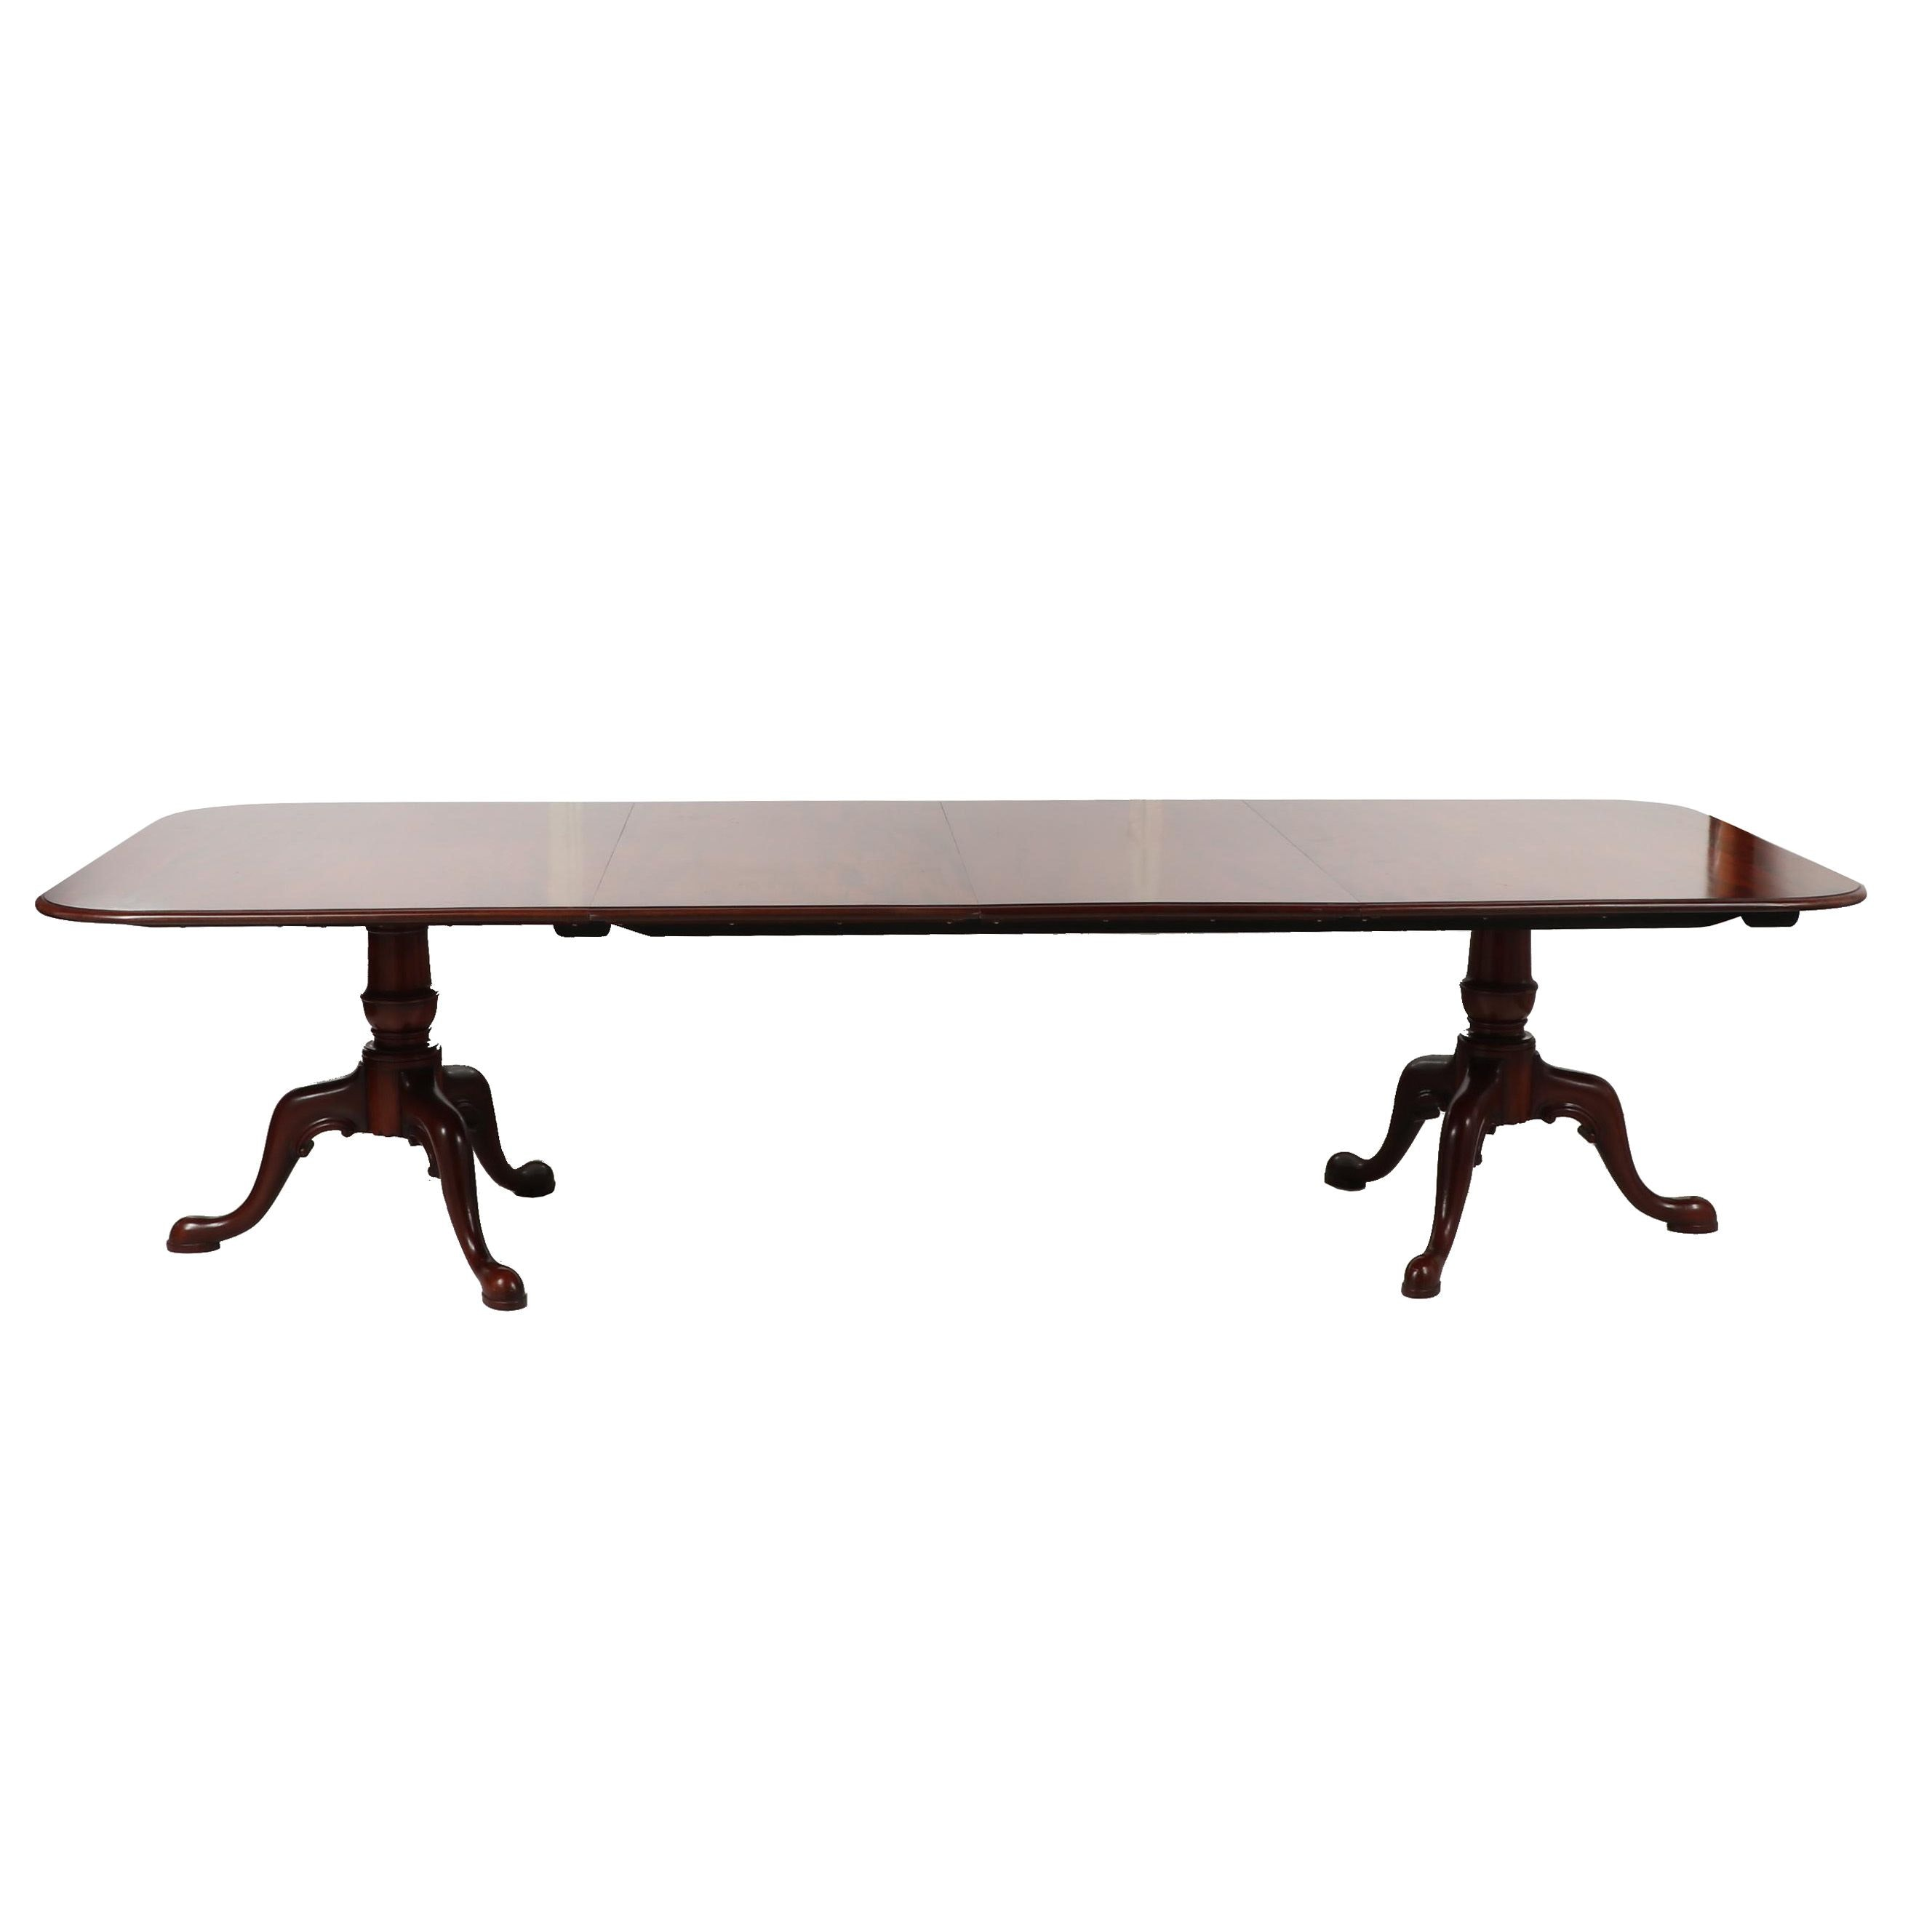 Arthur Brett & Sons, Ltd. Mahogany Dining Table with Leaves, Mid 20th Century